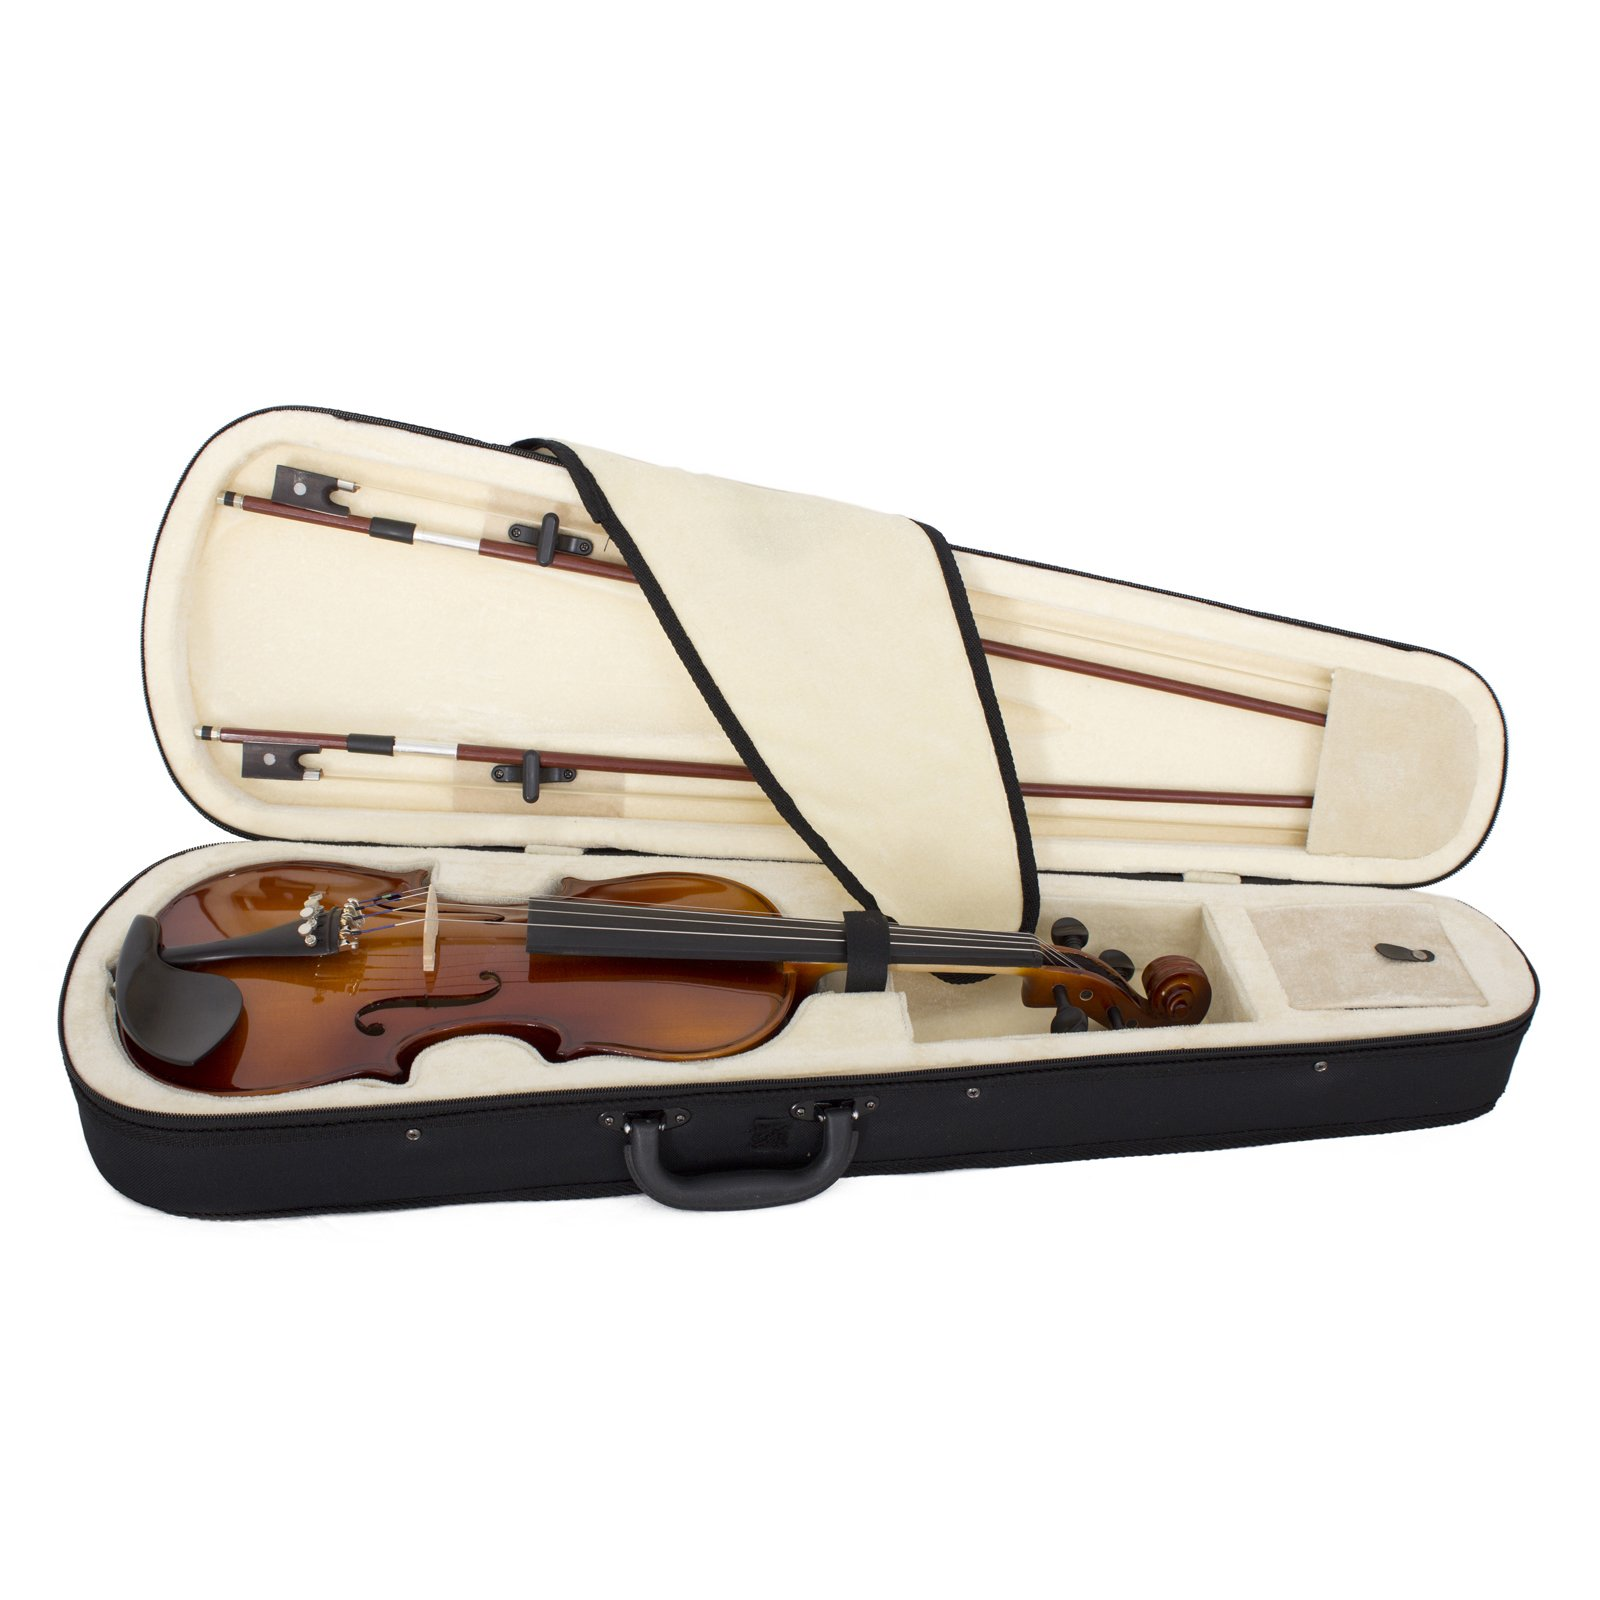 Cecilio CVN-320L Solidwood Ebony Fitted Left-Handed Violin with D'Addario Prelude Strings, Size 4/4 (Full Size) by Cecilio (Image #3)